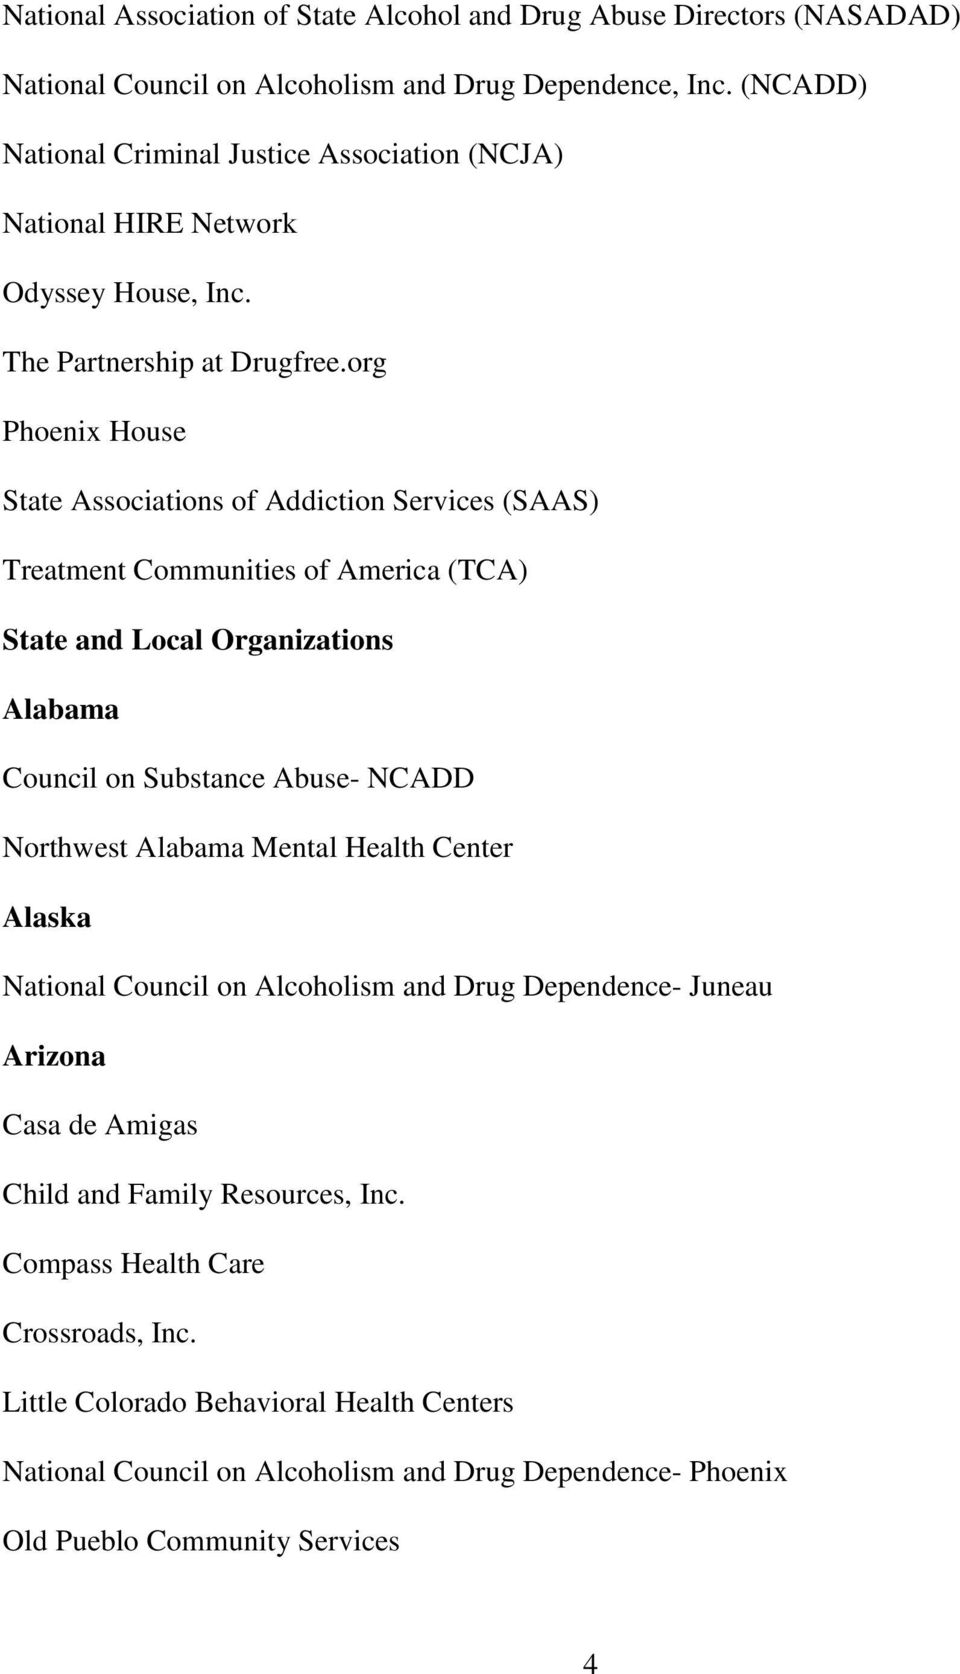 org Phoenix House State Associations of Addiction Services (SAAS) Treatment Communities of America (TCA) State and Local Organizations Alabama Council on Substance Abuse- NCADD Northwest